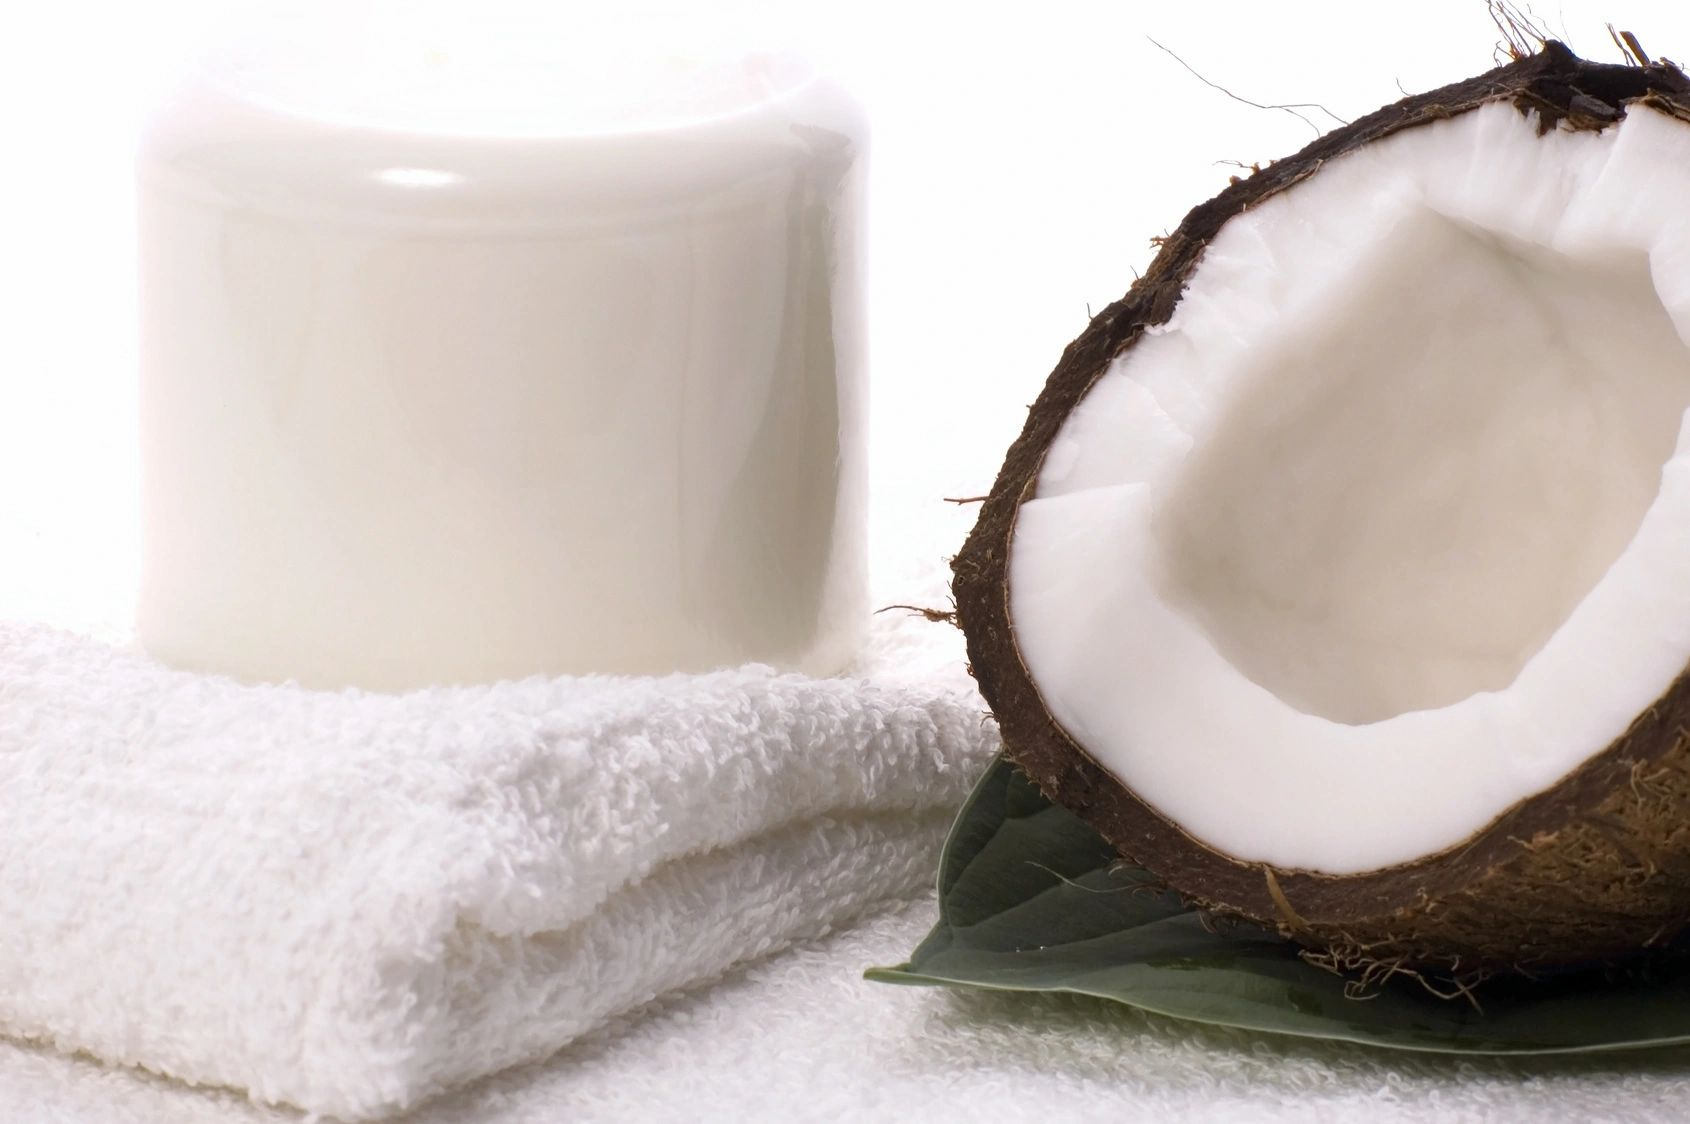 CocoSani - sanitize your hands without drying them out, naturally and effectively